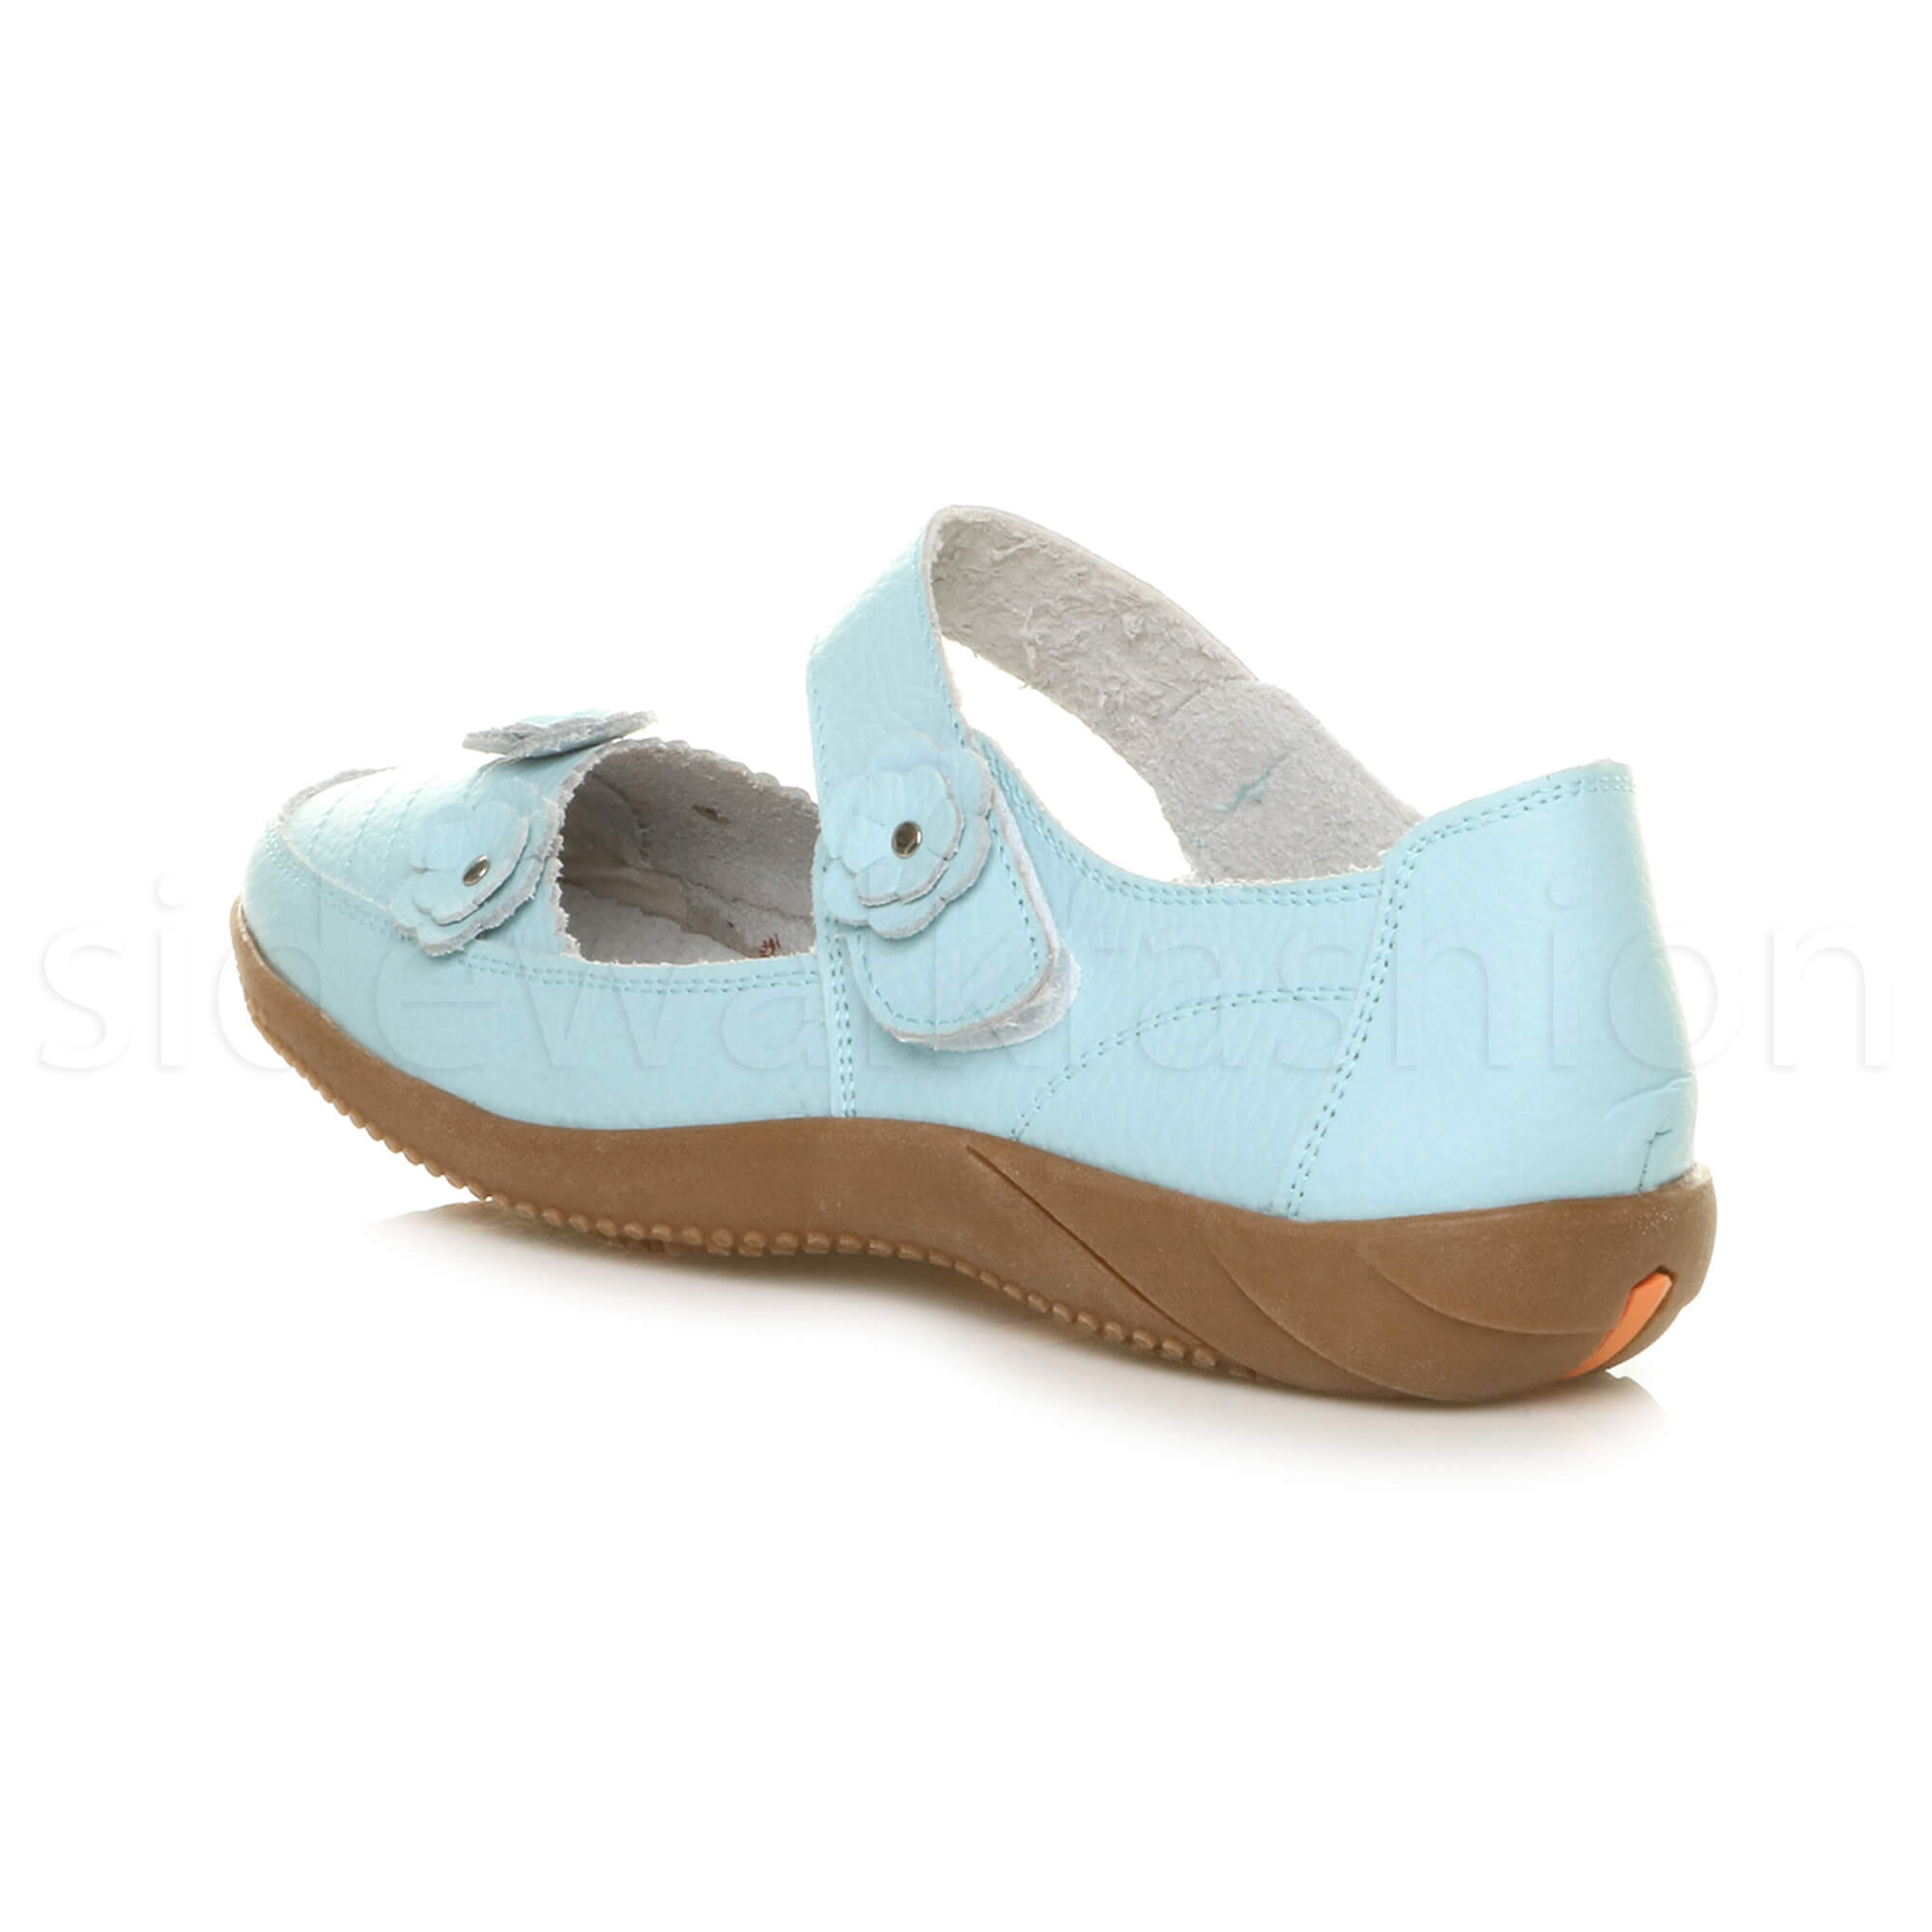 Womens-ladies-leather-comfort-walking-casual-sandals-mary-jane-strap-shoes-size thumbnail 50